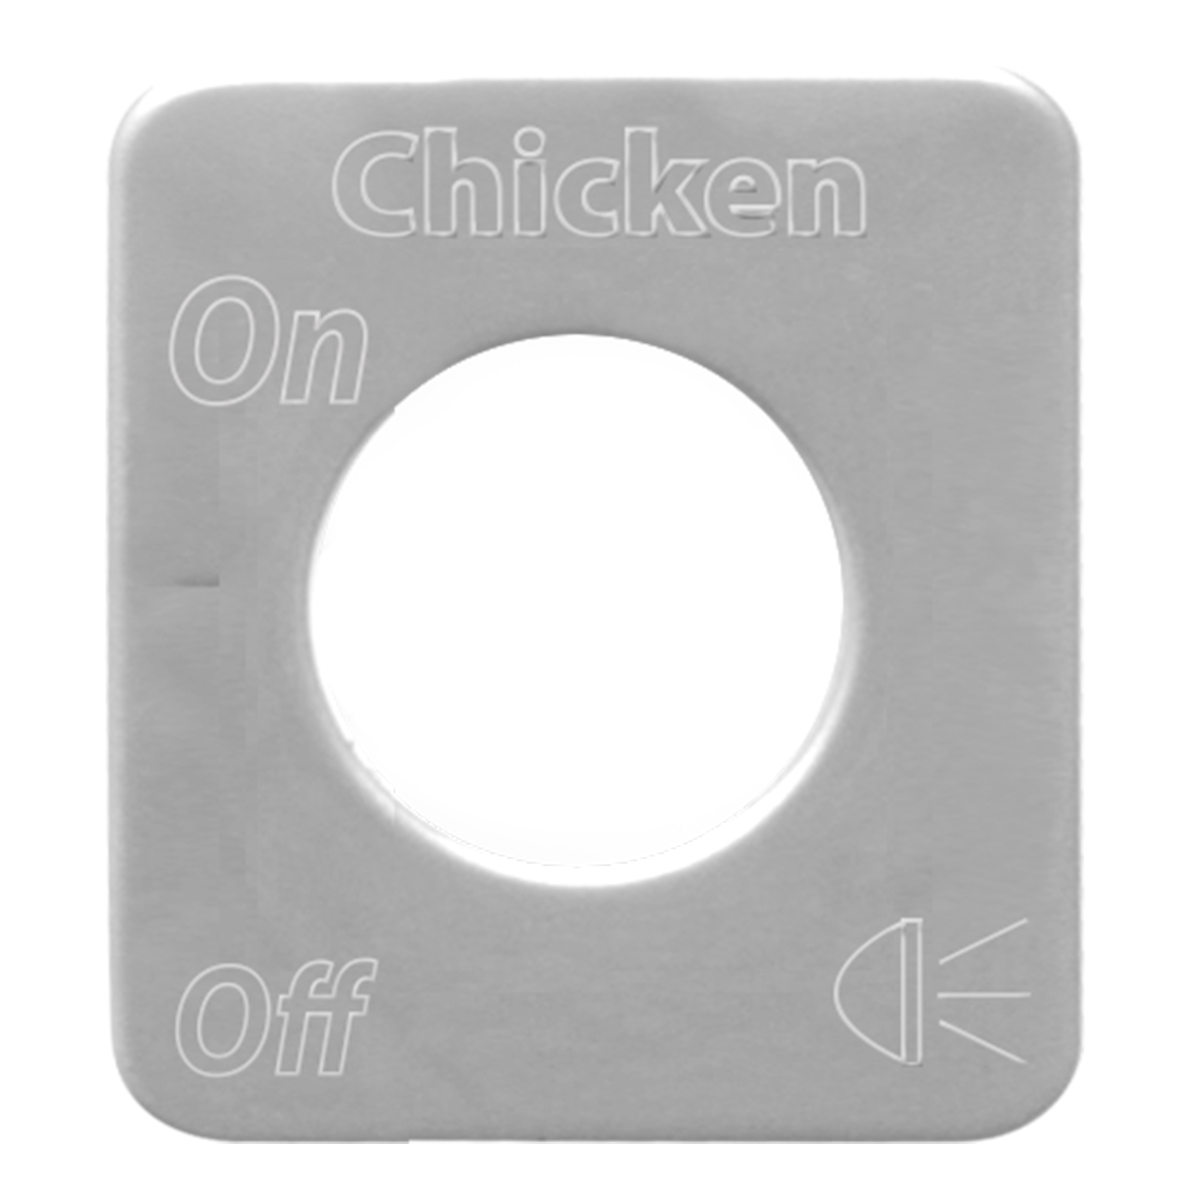 68532 Stainless Steel Chicken Light Switch Plate for KW